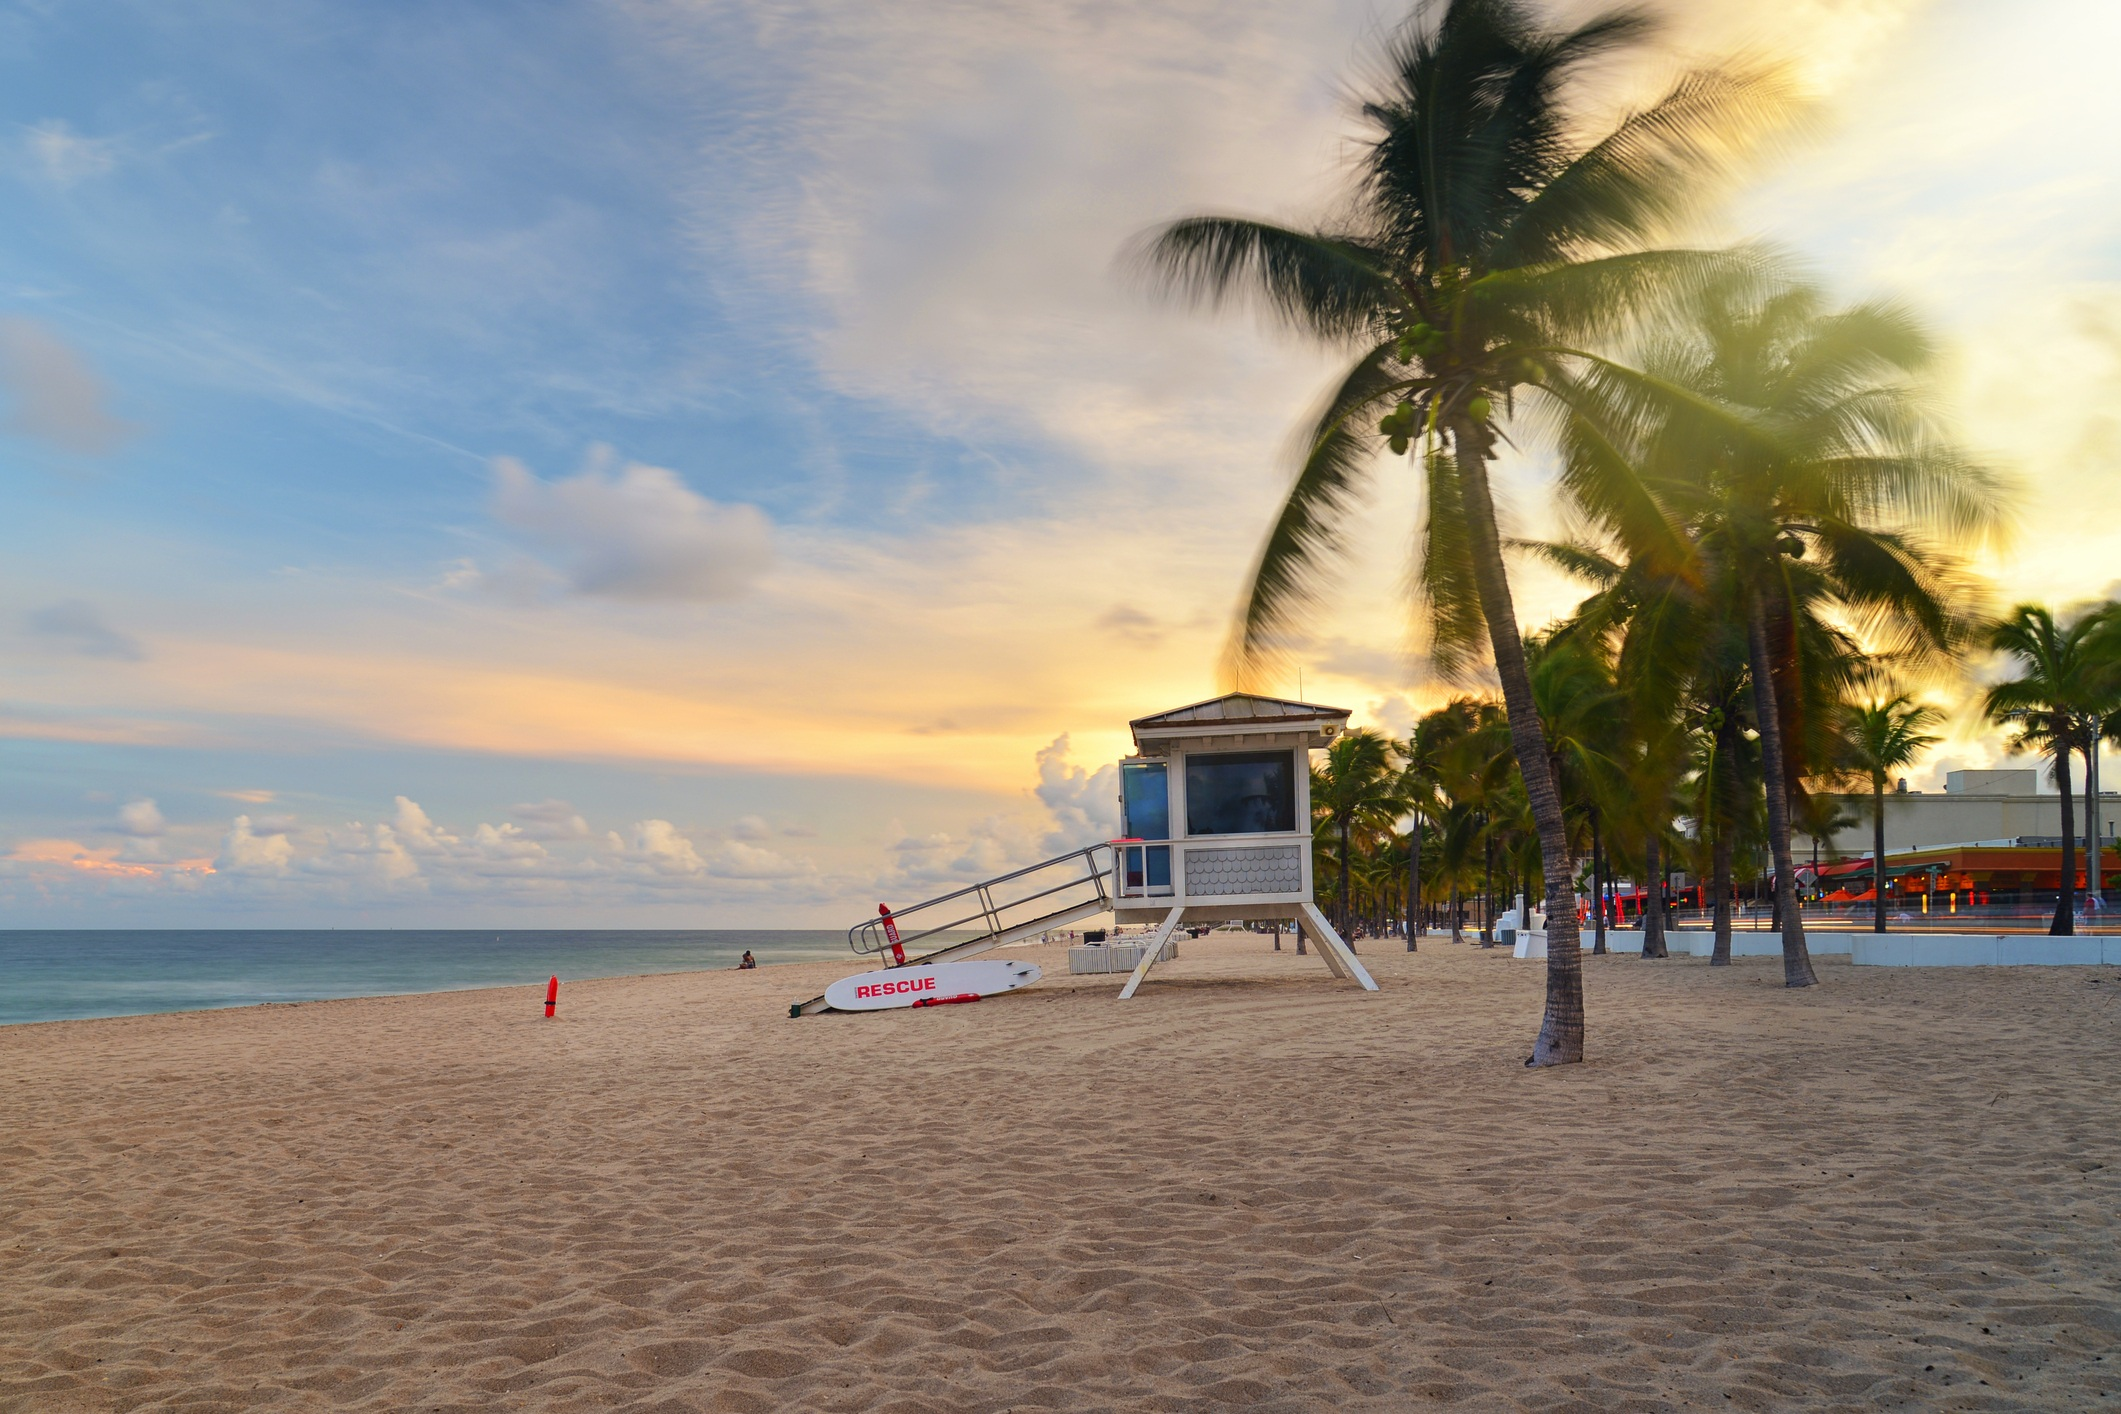 Sunset at Sunrise Beach in Ft.Lauderdale with palm trees and beach entry feature.